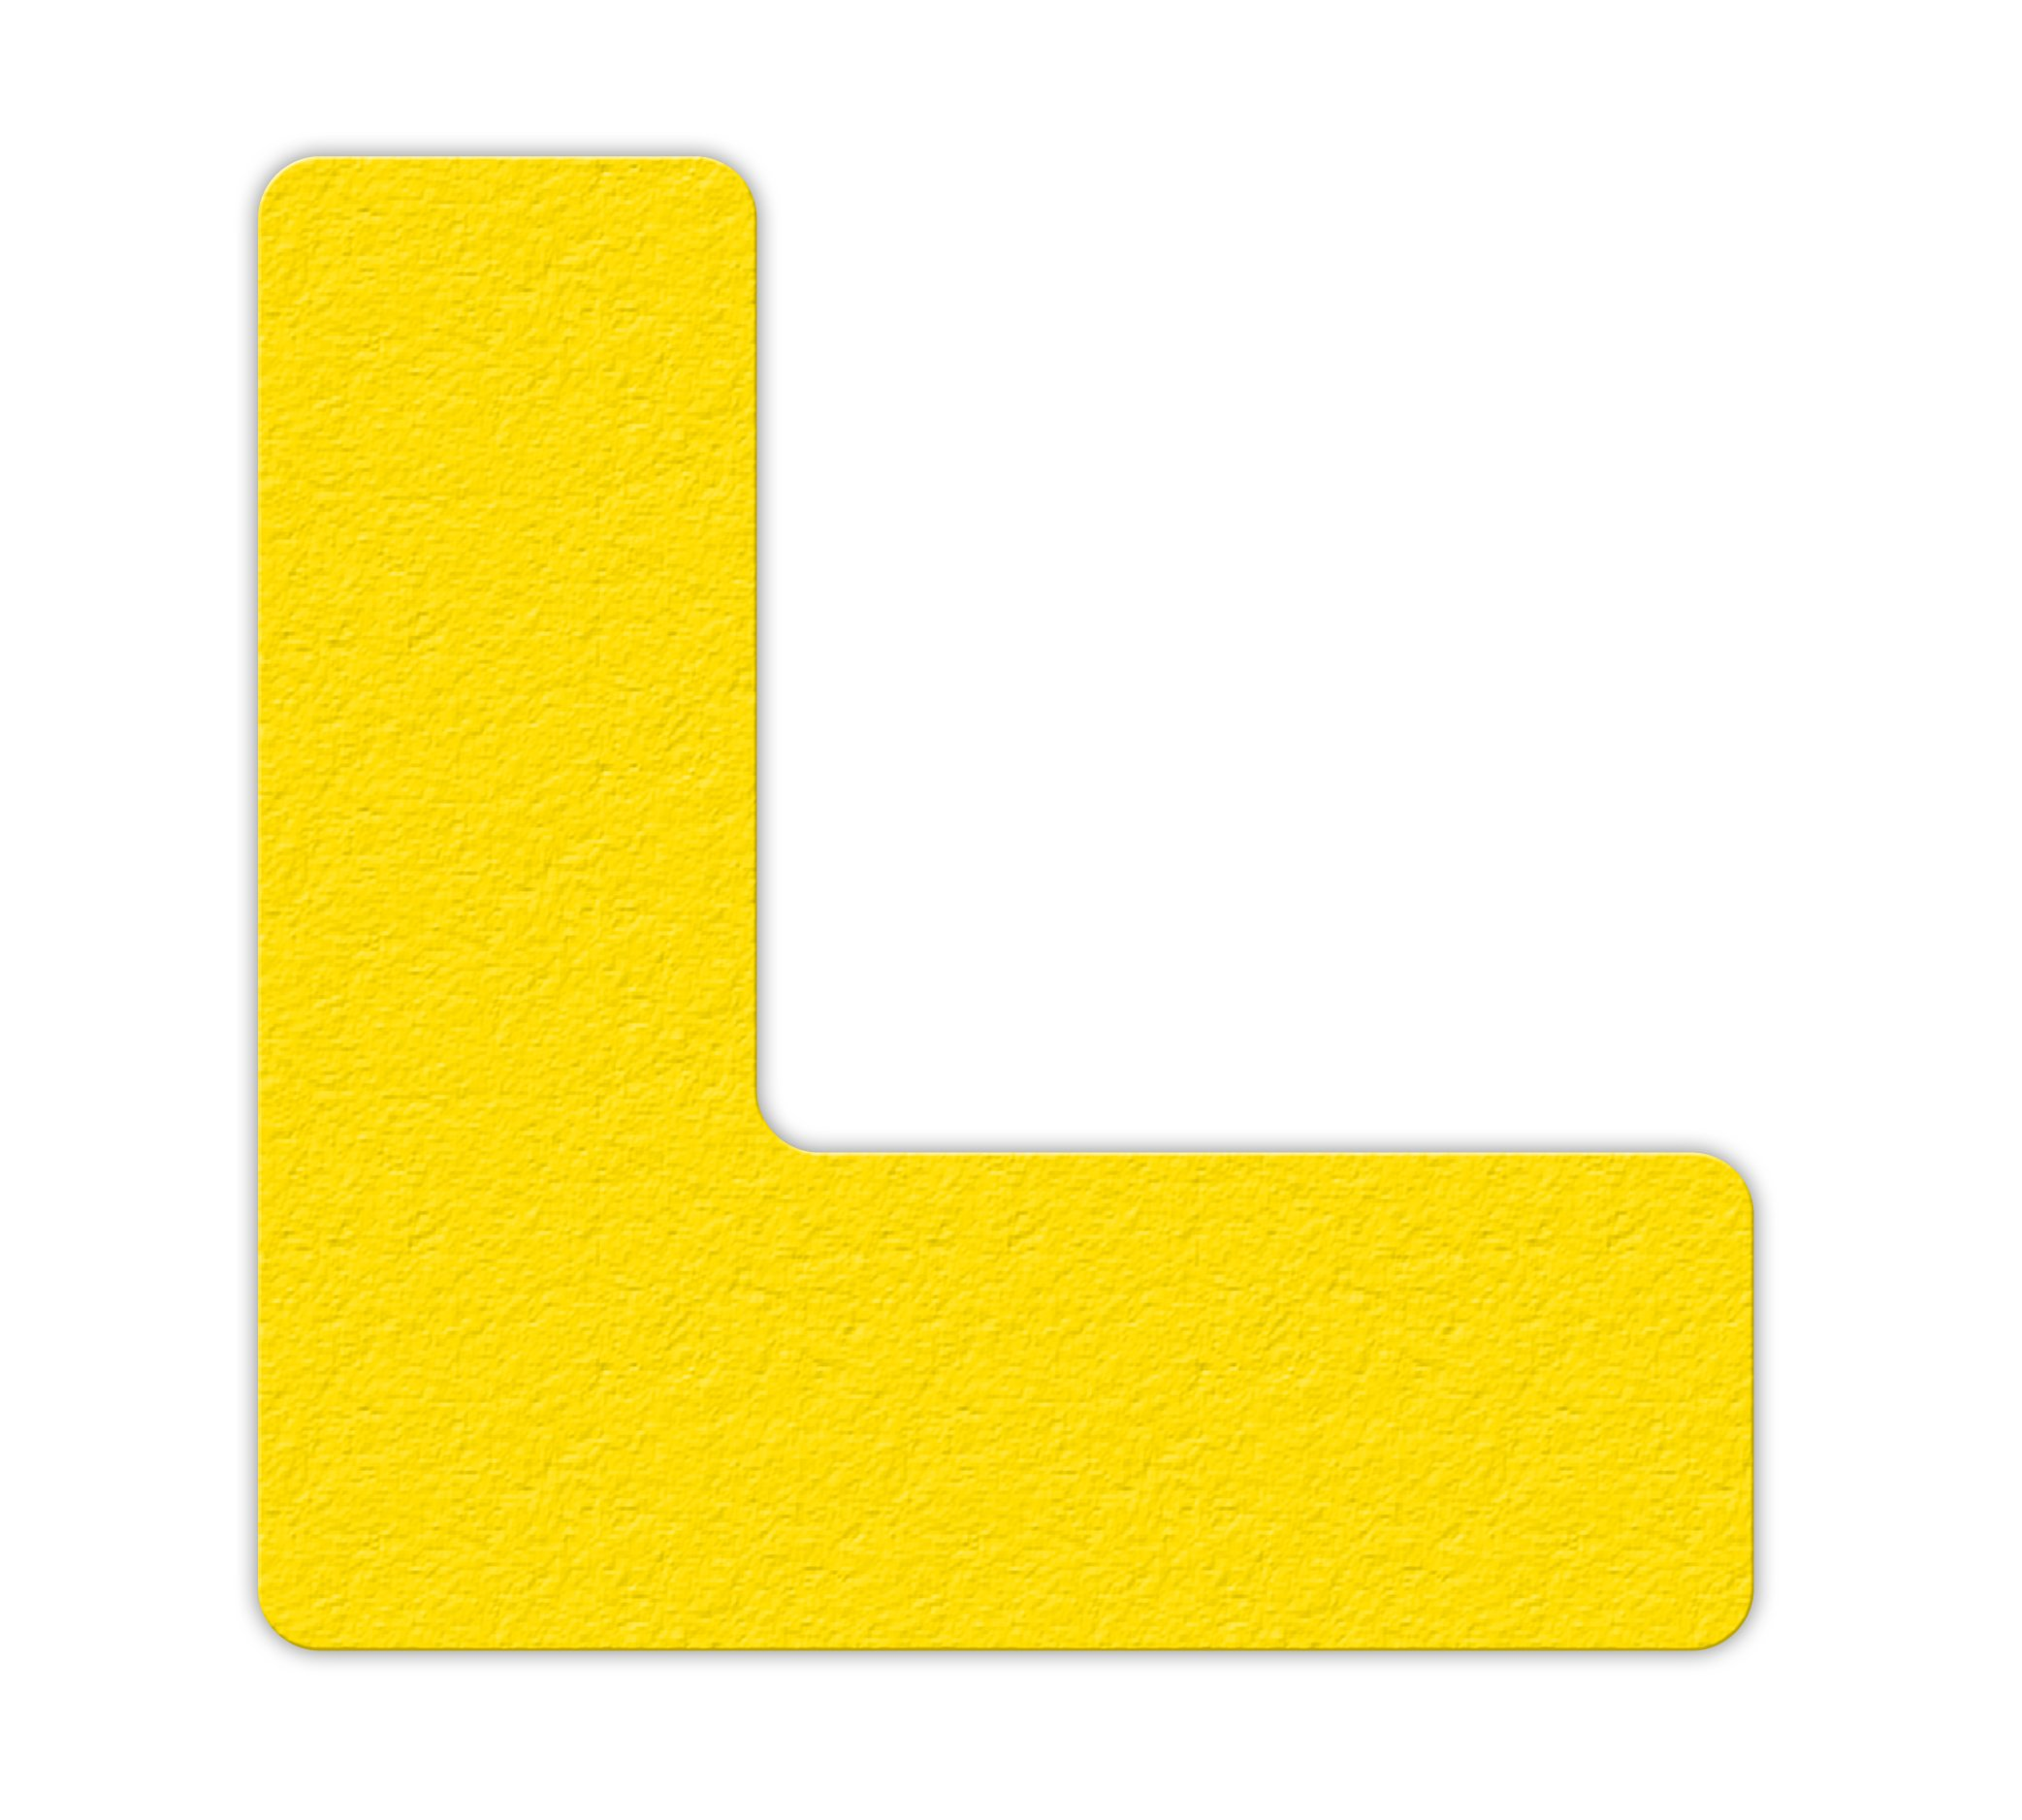 INCOM Manufacturing: LM110Y Textured Anti-Slip 5S Lean Workplace Floor Marker Corner Strip''L'' Shape, 6'' x 6'', Yellow (Pack of 25)